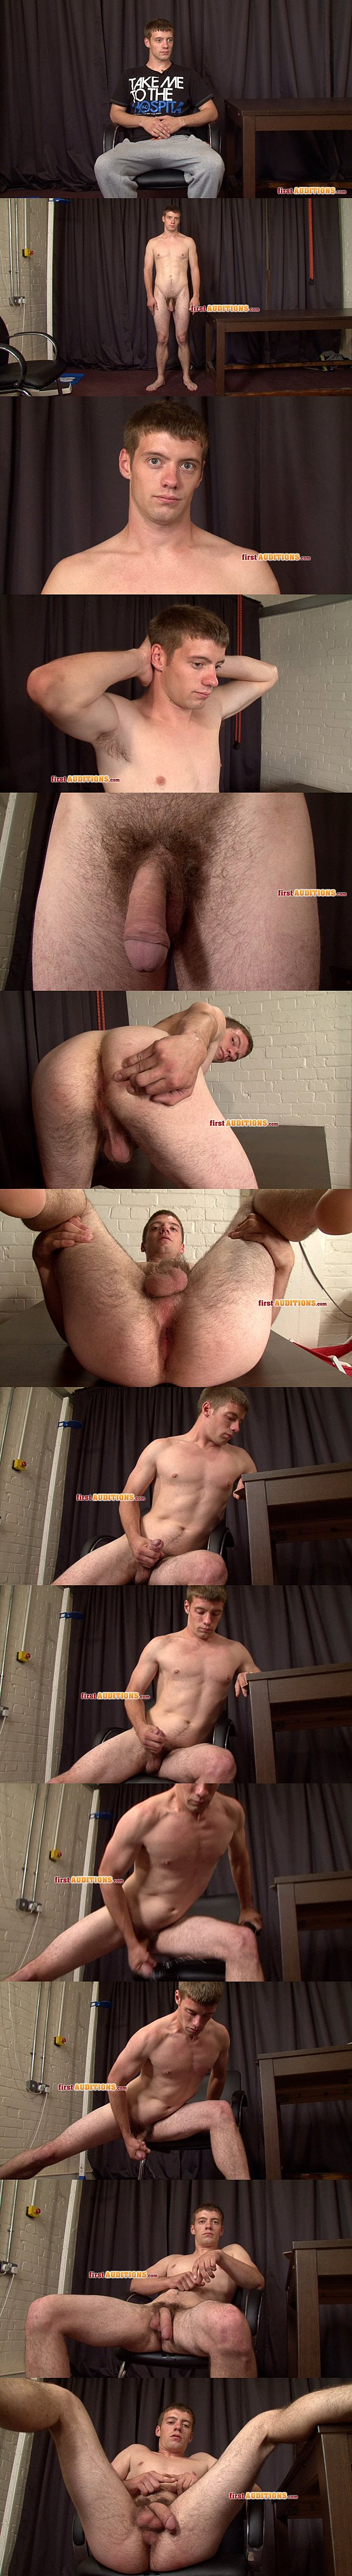 Super hot British dude Brendan shoot a thick load in Ejaculation Test & Physical Examination at Thecastingroom